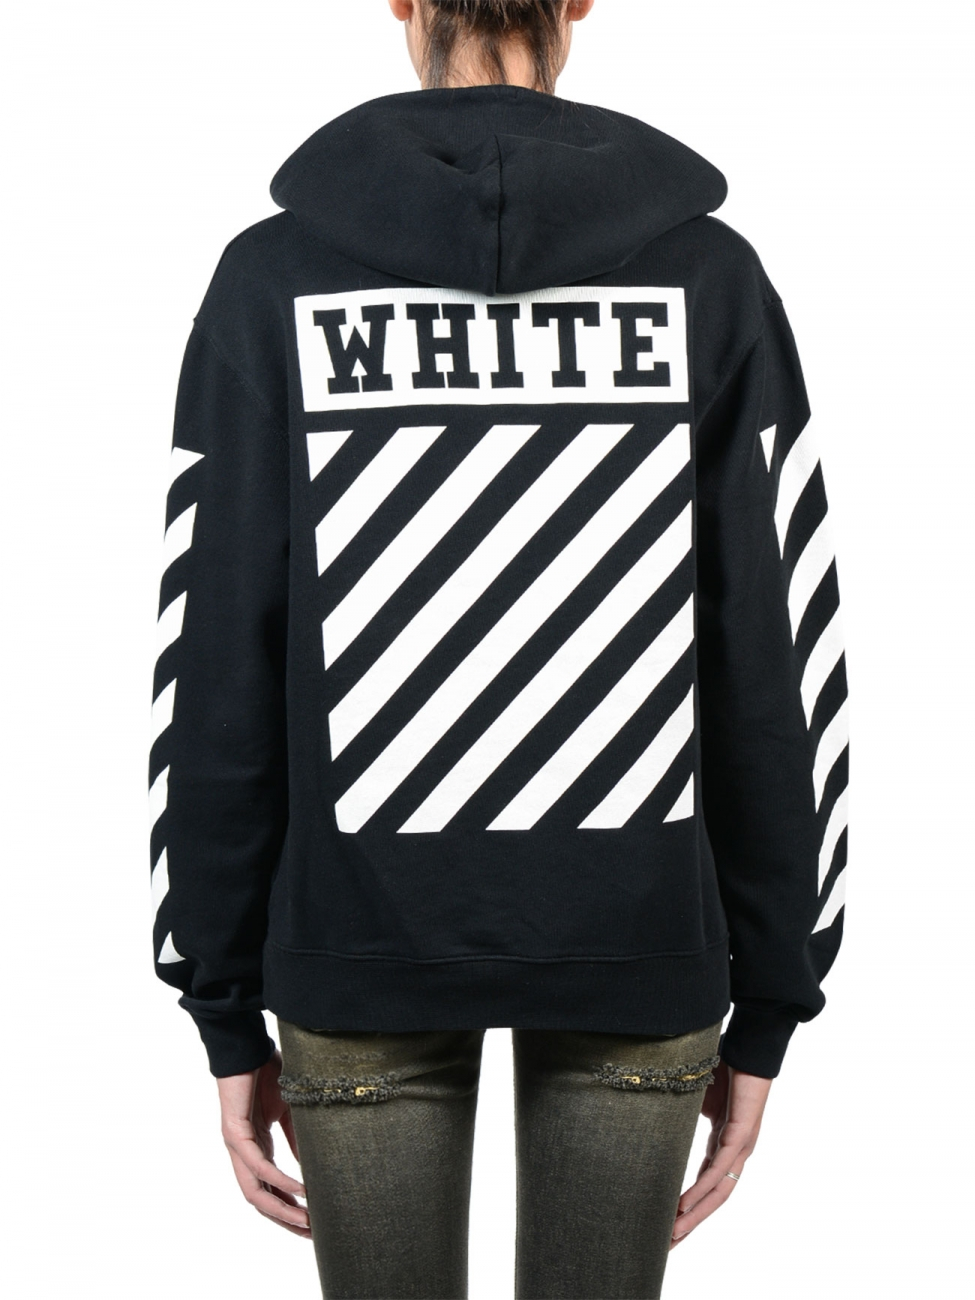 Off-white c/o virgil abloh Caravaggio Black Hoodie in Black | Lyst